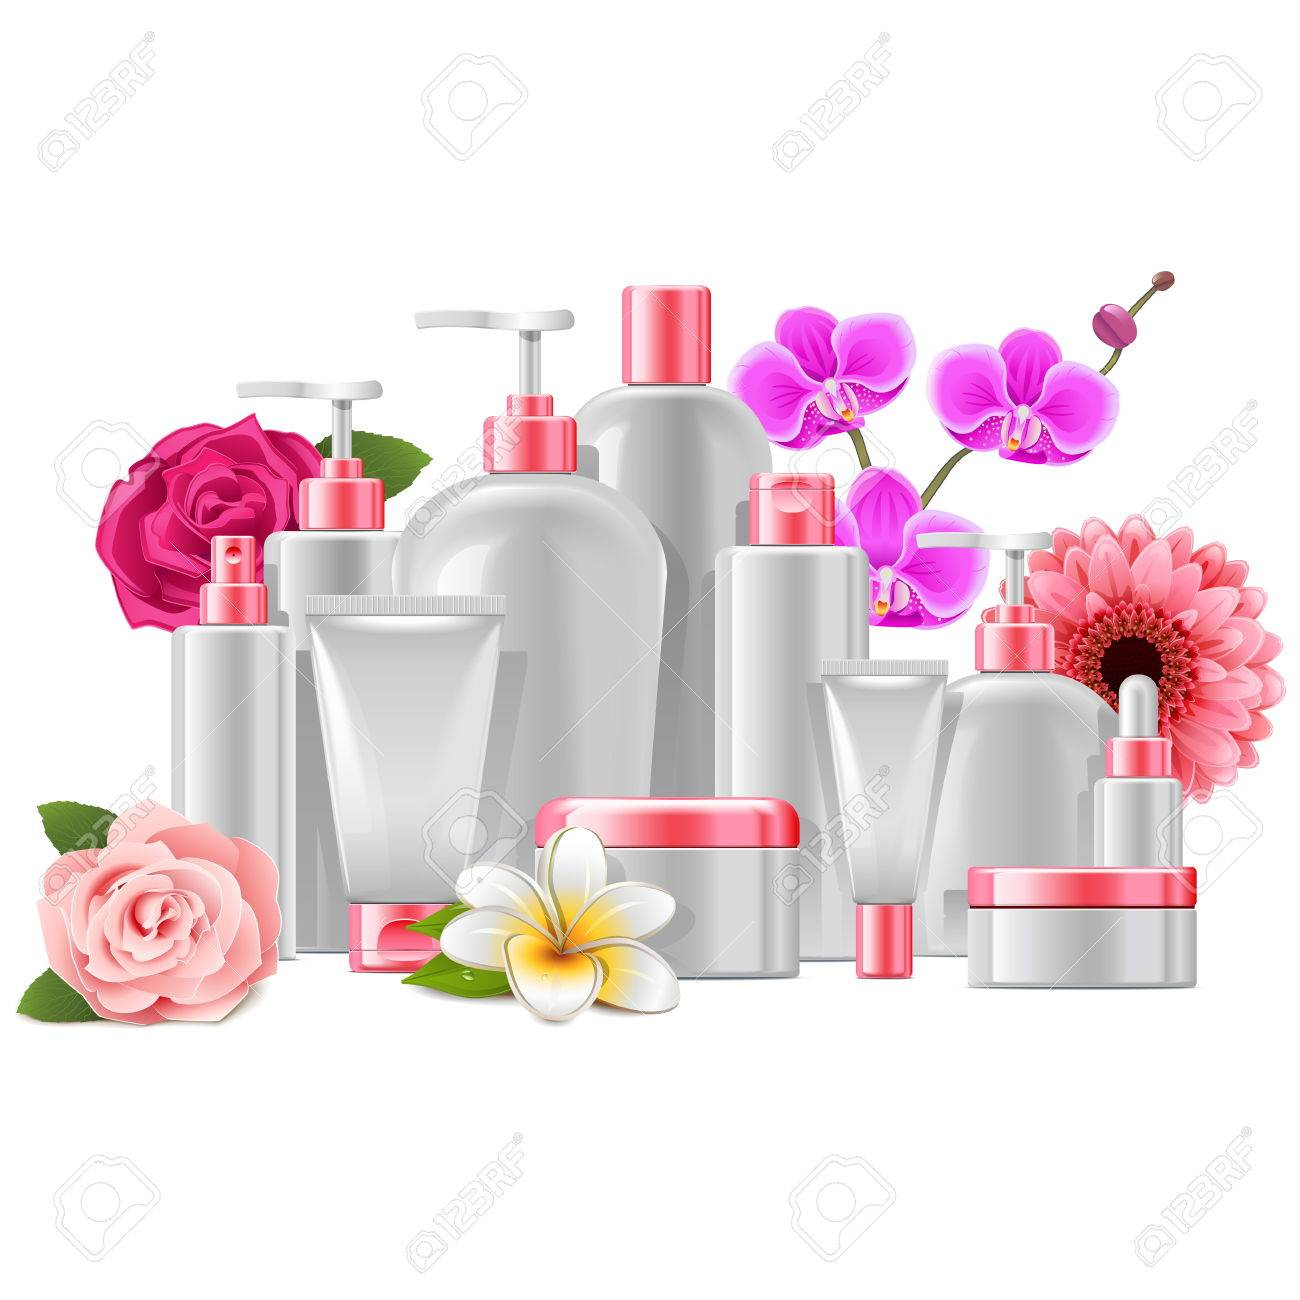 Vector Cosmetic Packaging with Flowers isolated on white background - 59797145